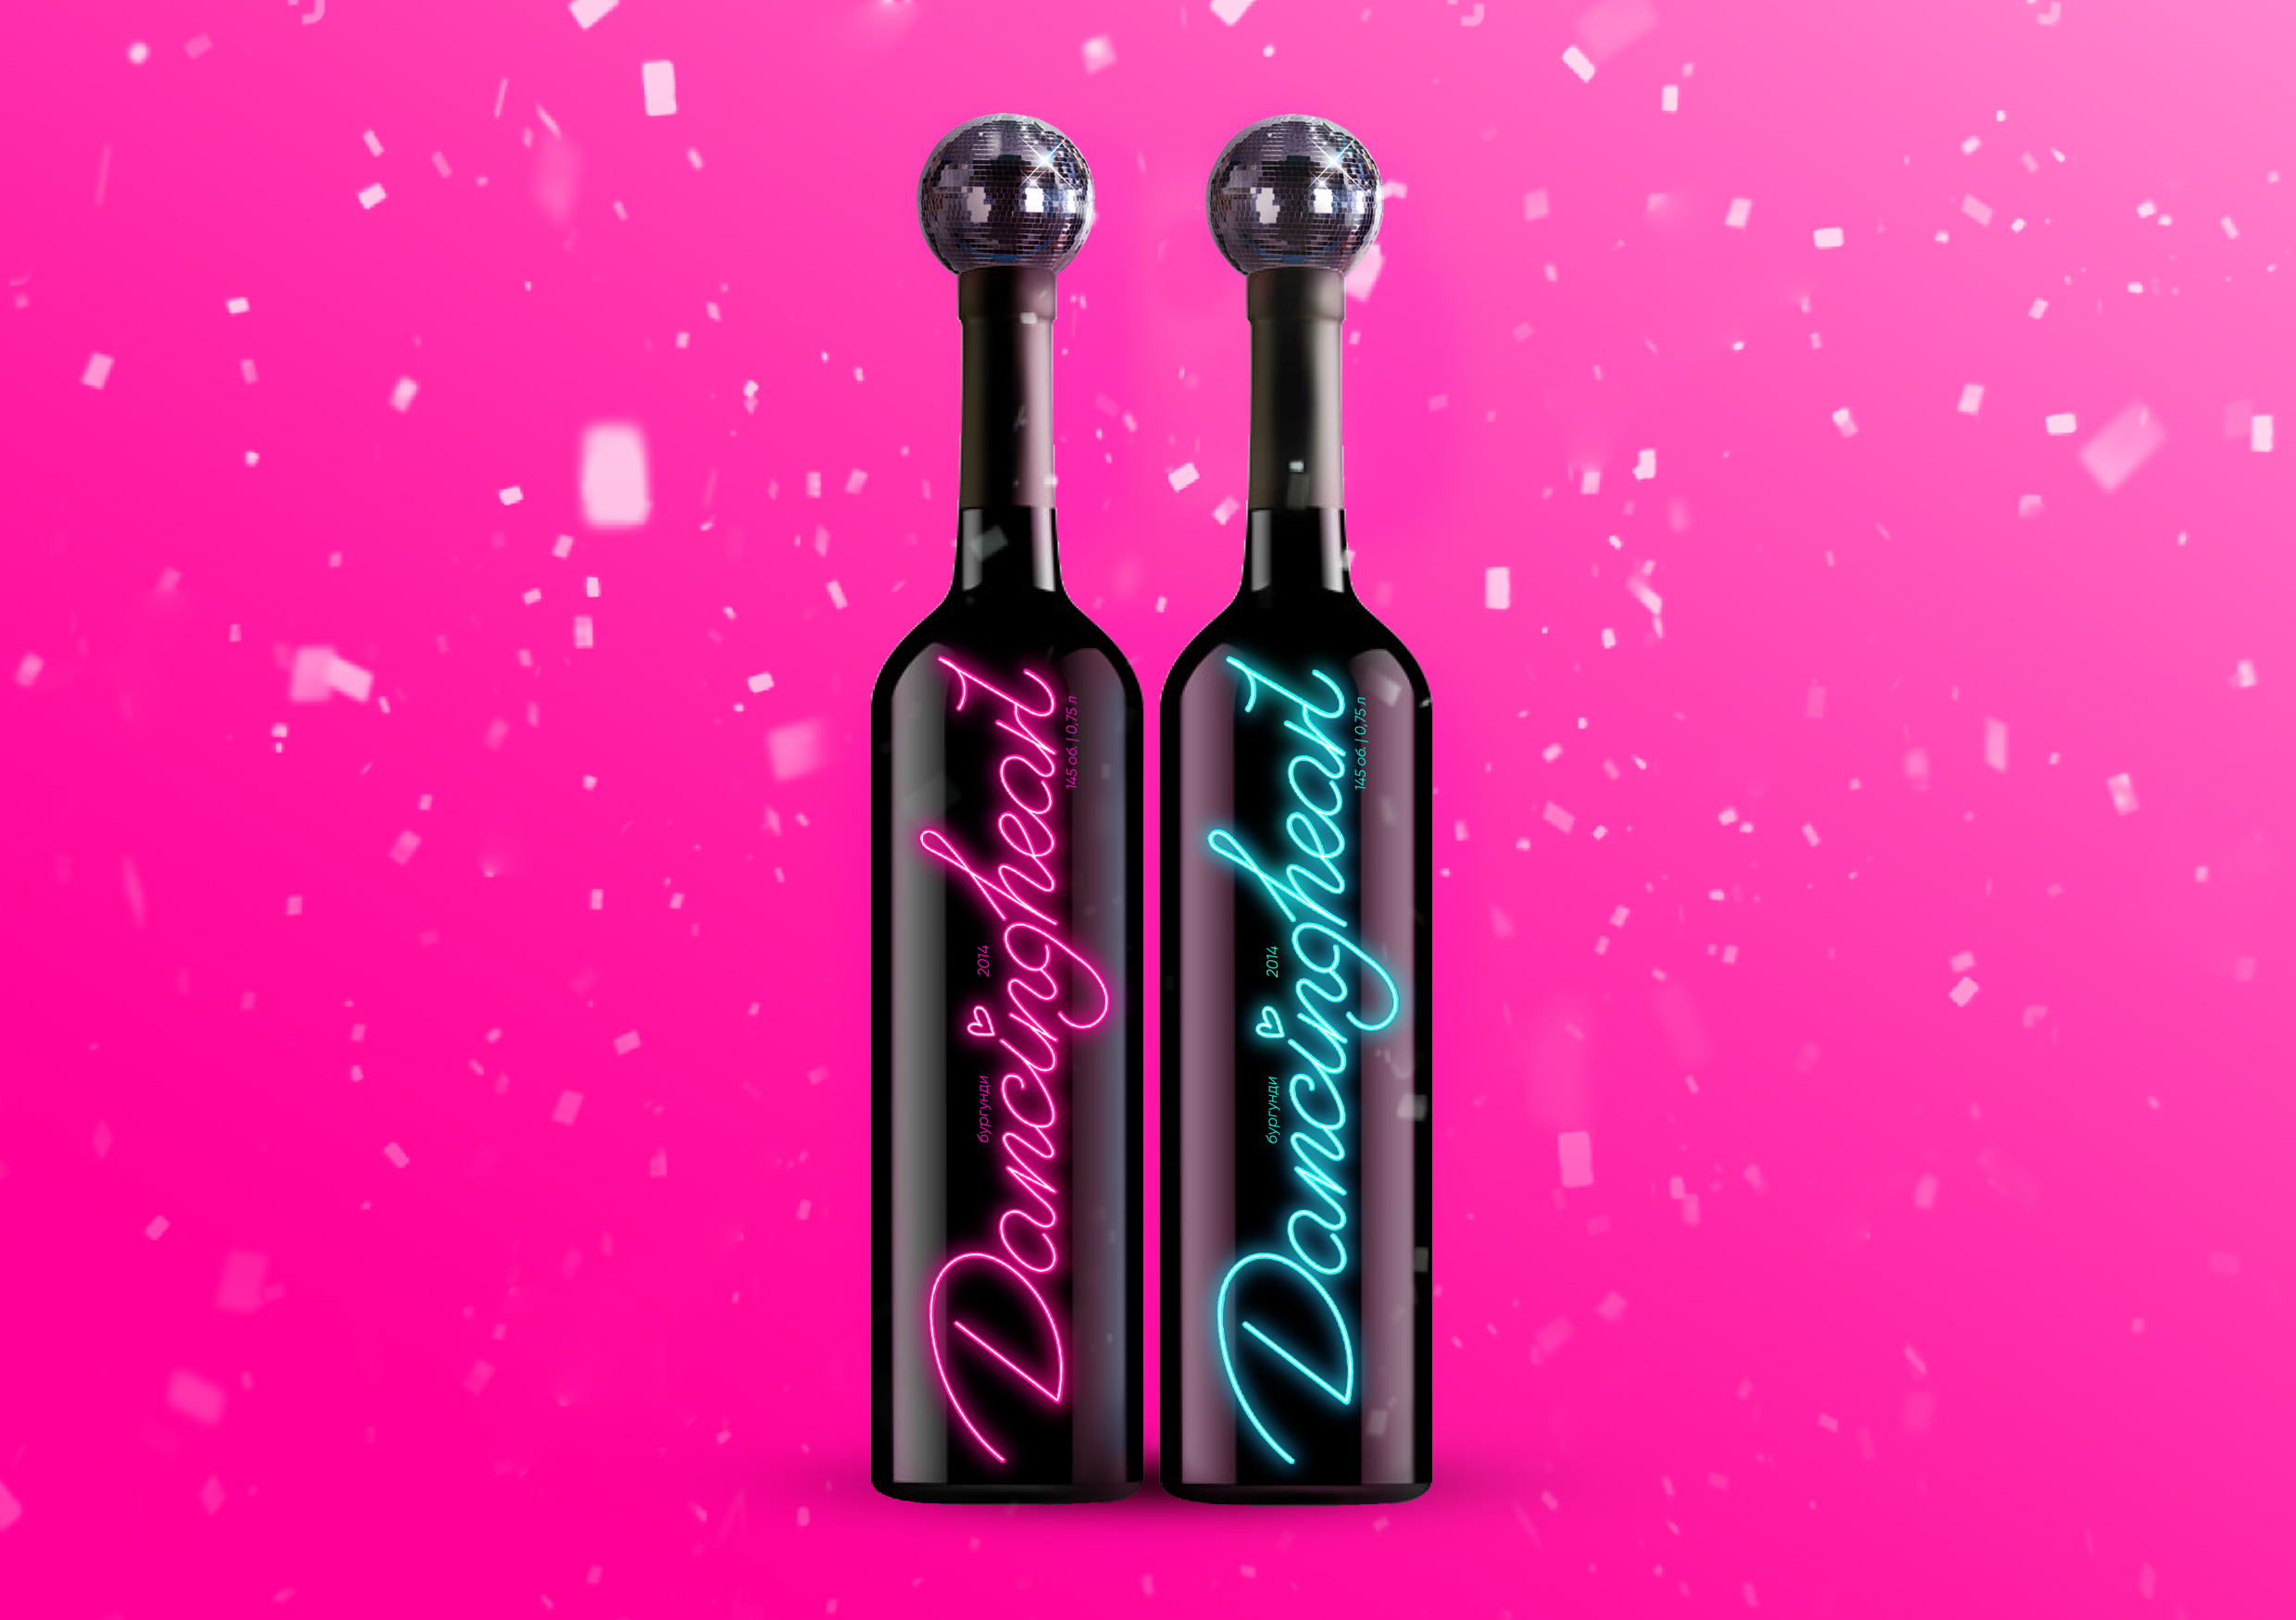 DancingHeart Wine of Disco Style by Alexandra Pershina